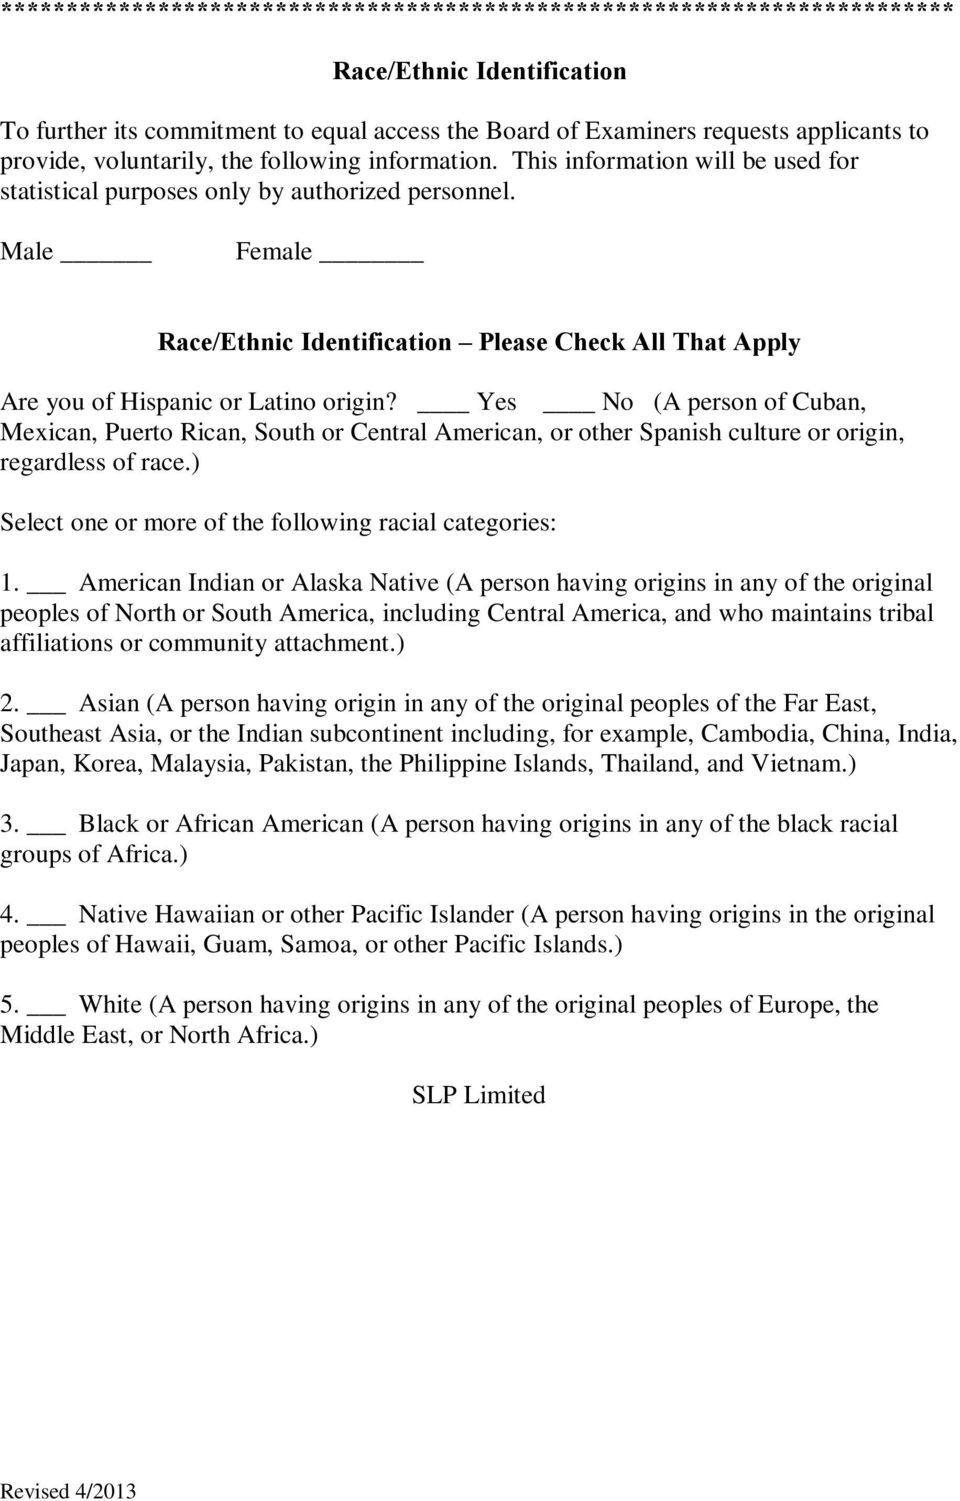 Male Female Race/Ethnic Identification Please Check All That Apply Are you of Hispanic or Latino origin?